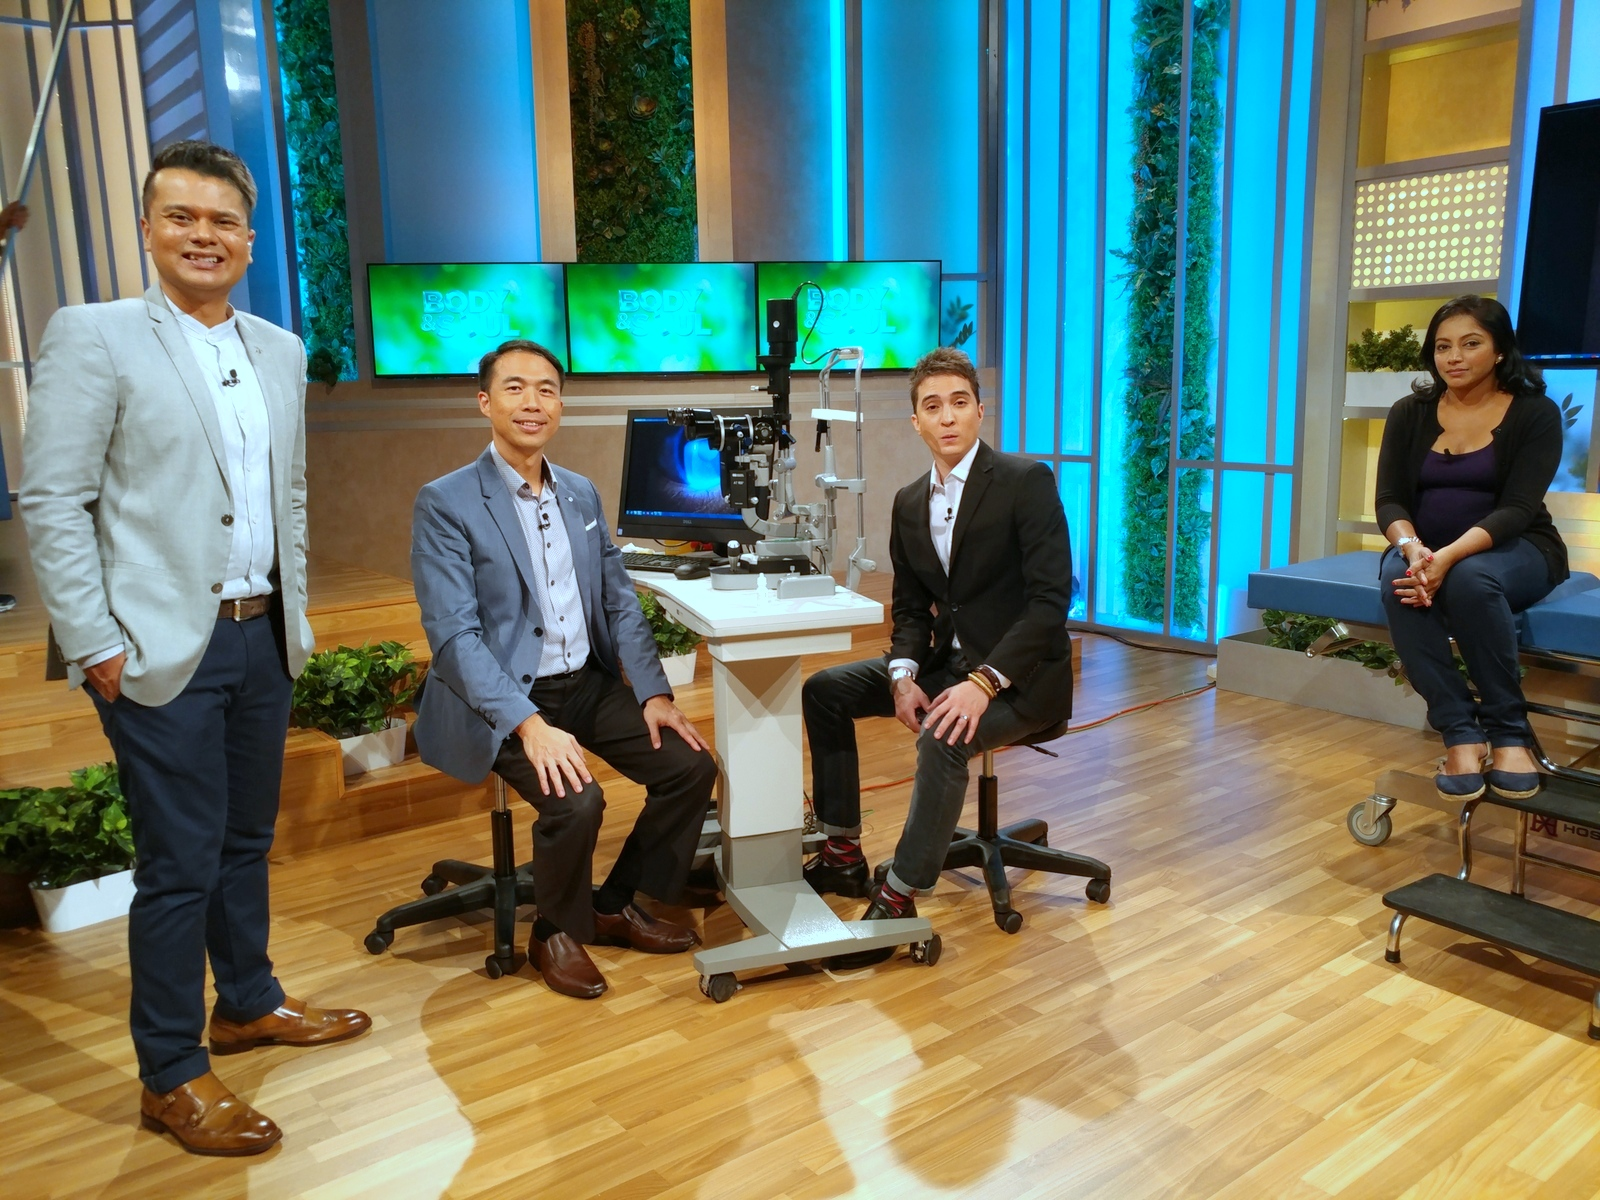 Dr Lee Sao Bing's TV Interview On Mediacorp Channel 5 Body and Soul Episode 6